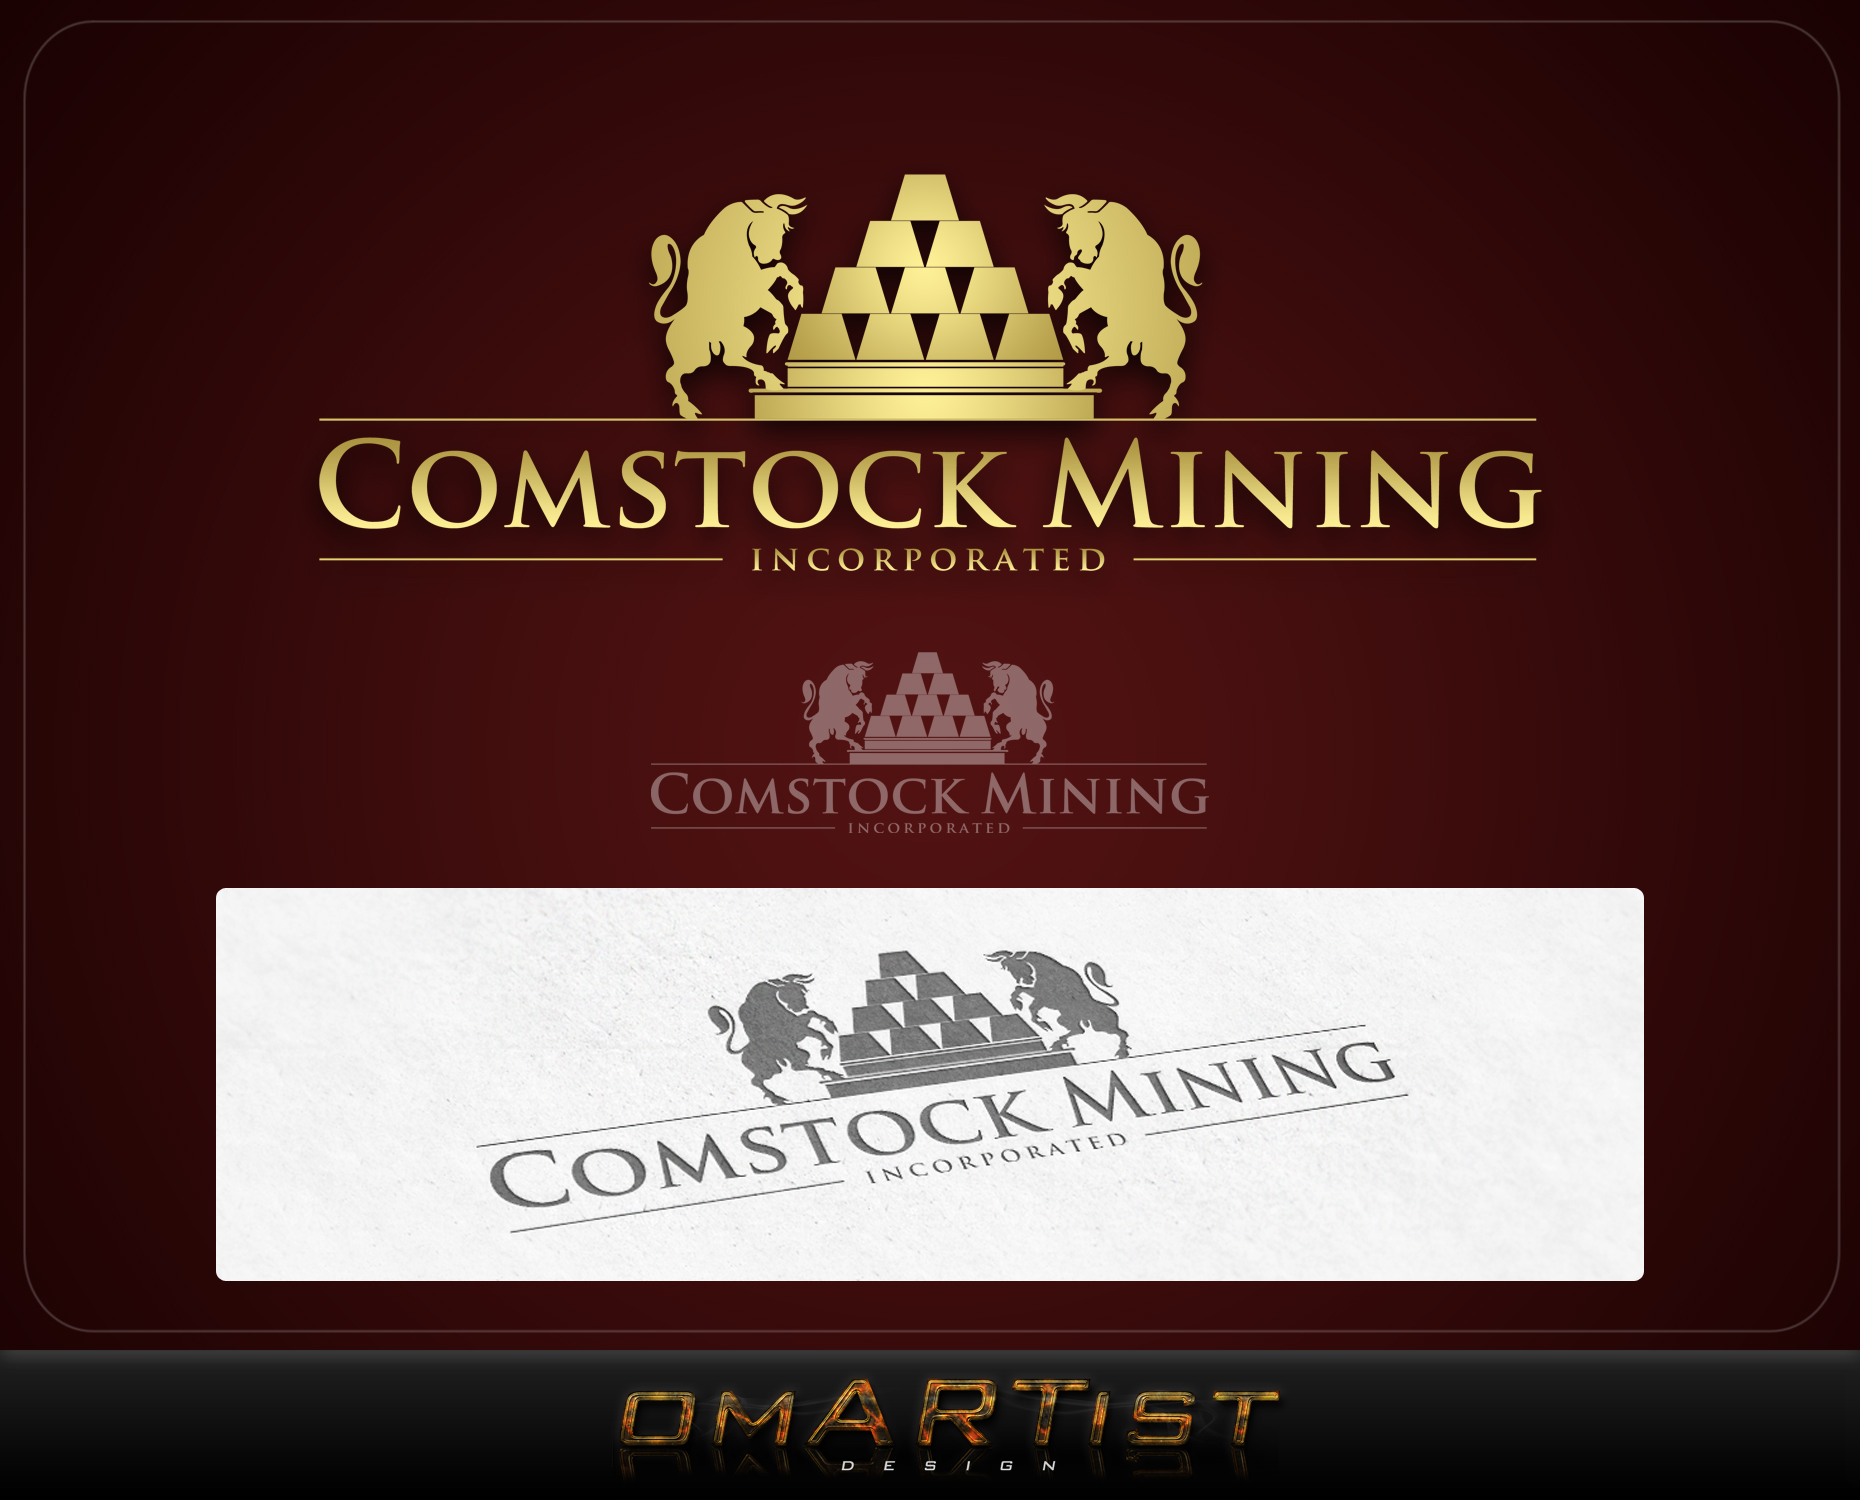 Logo Design by omARTist - Entry No. 86 in the Logo Design Contest Captivating Logo Design for Comstock Mining, Inc..